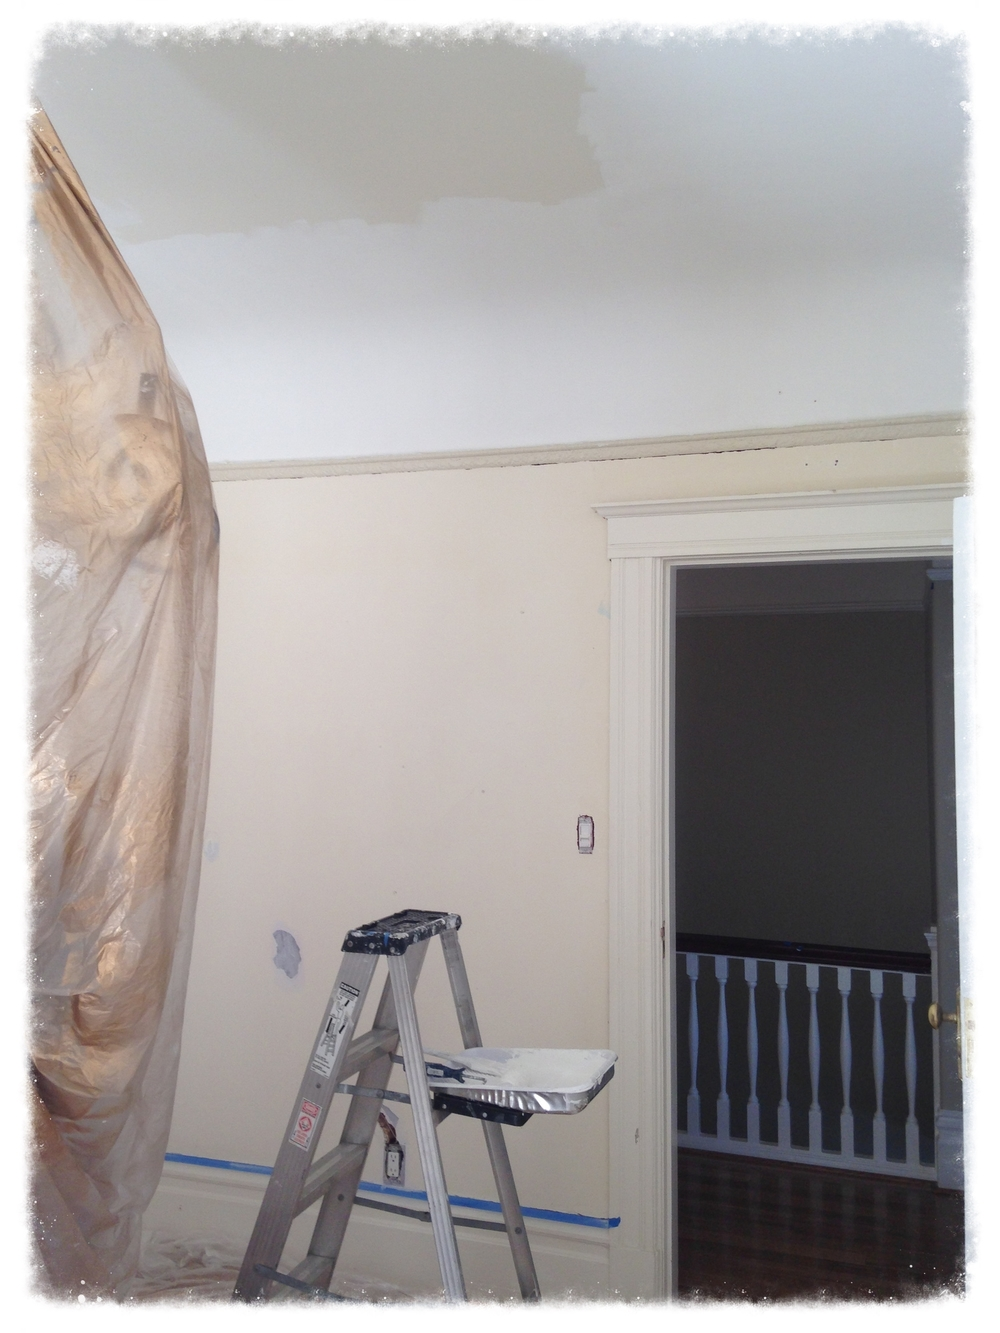 Start of the ceiling painting process